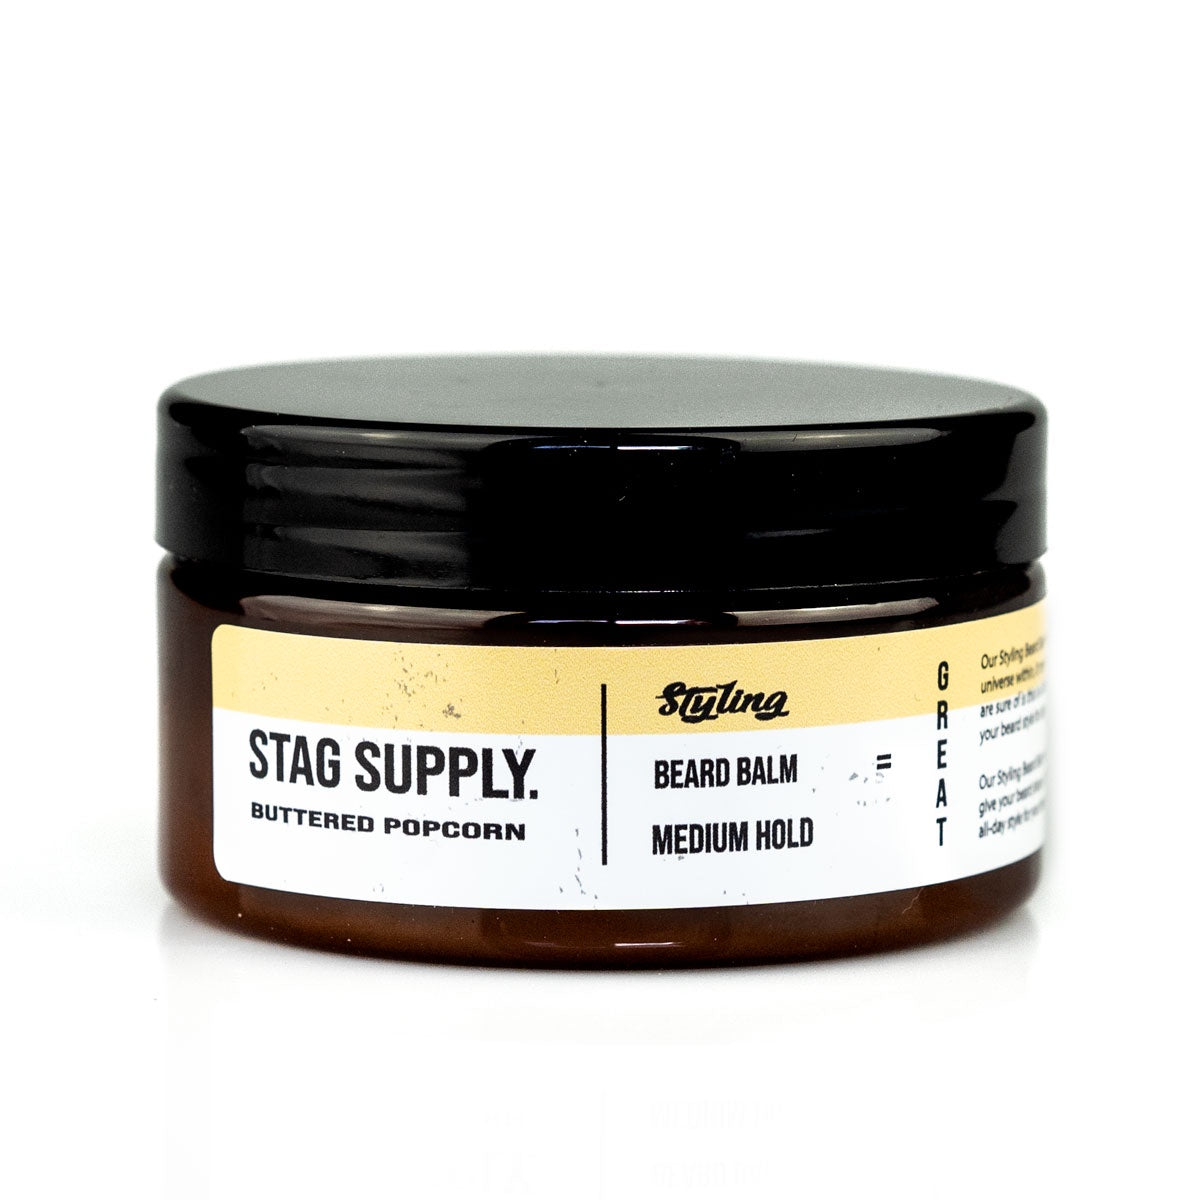 Stag Supply Buttered Popcorn Beard Balm 100ml